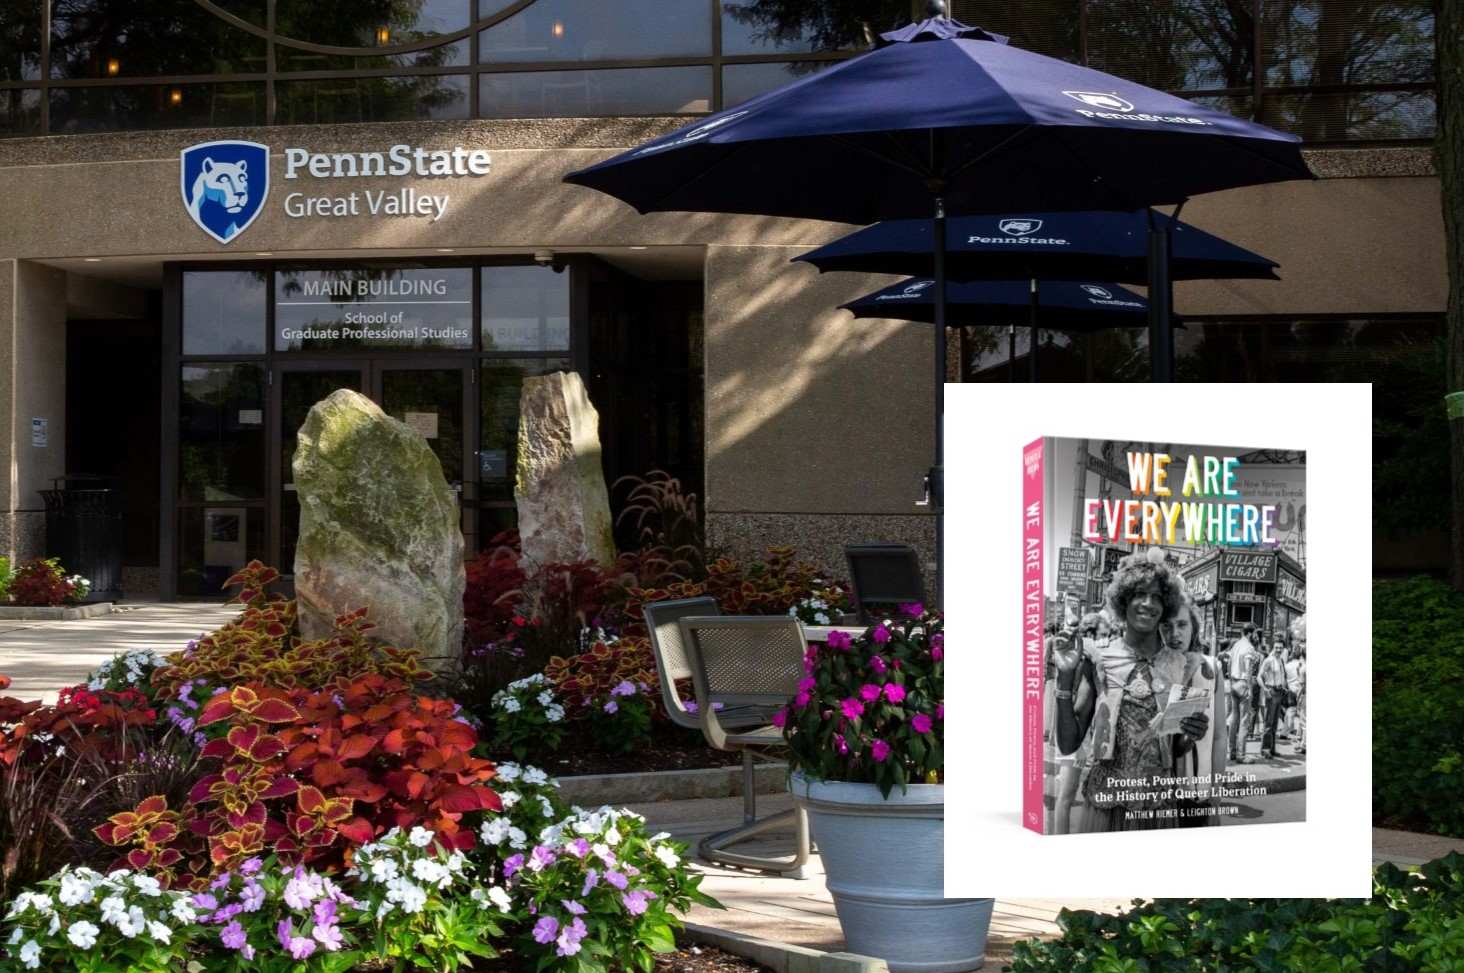 Penn State Great Valley to Host Free Talk on LGBT History on Oct. 30